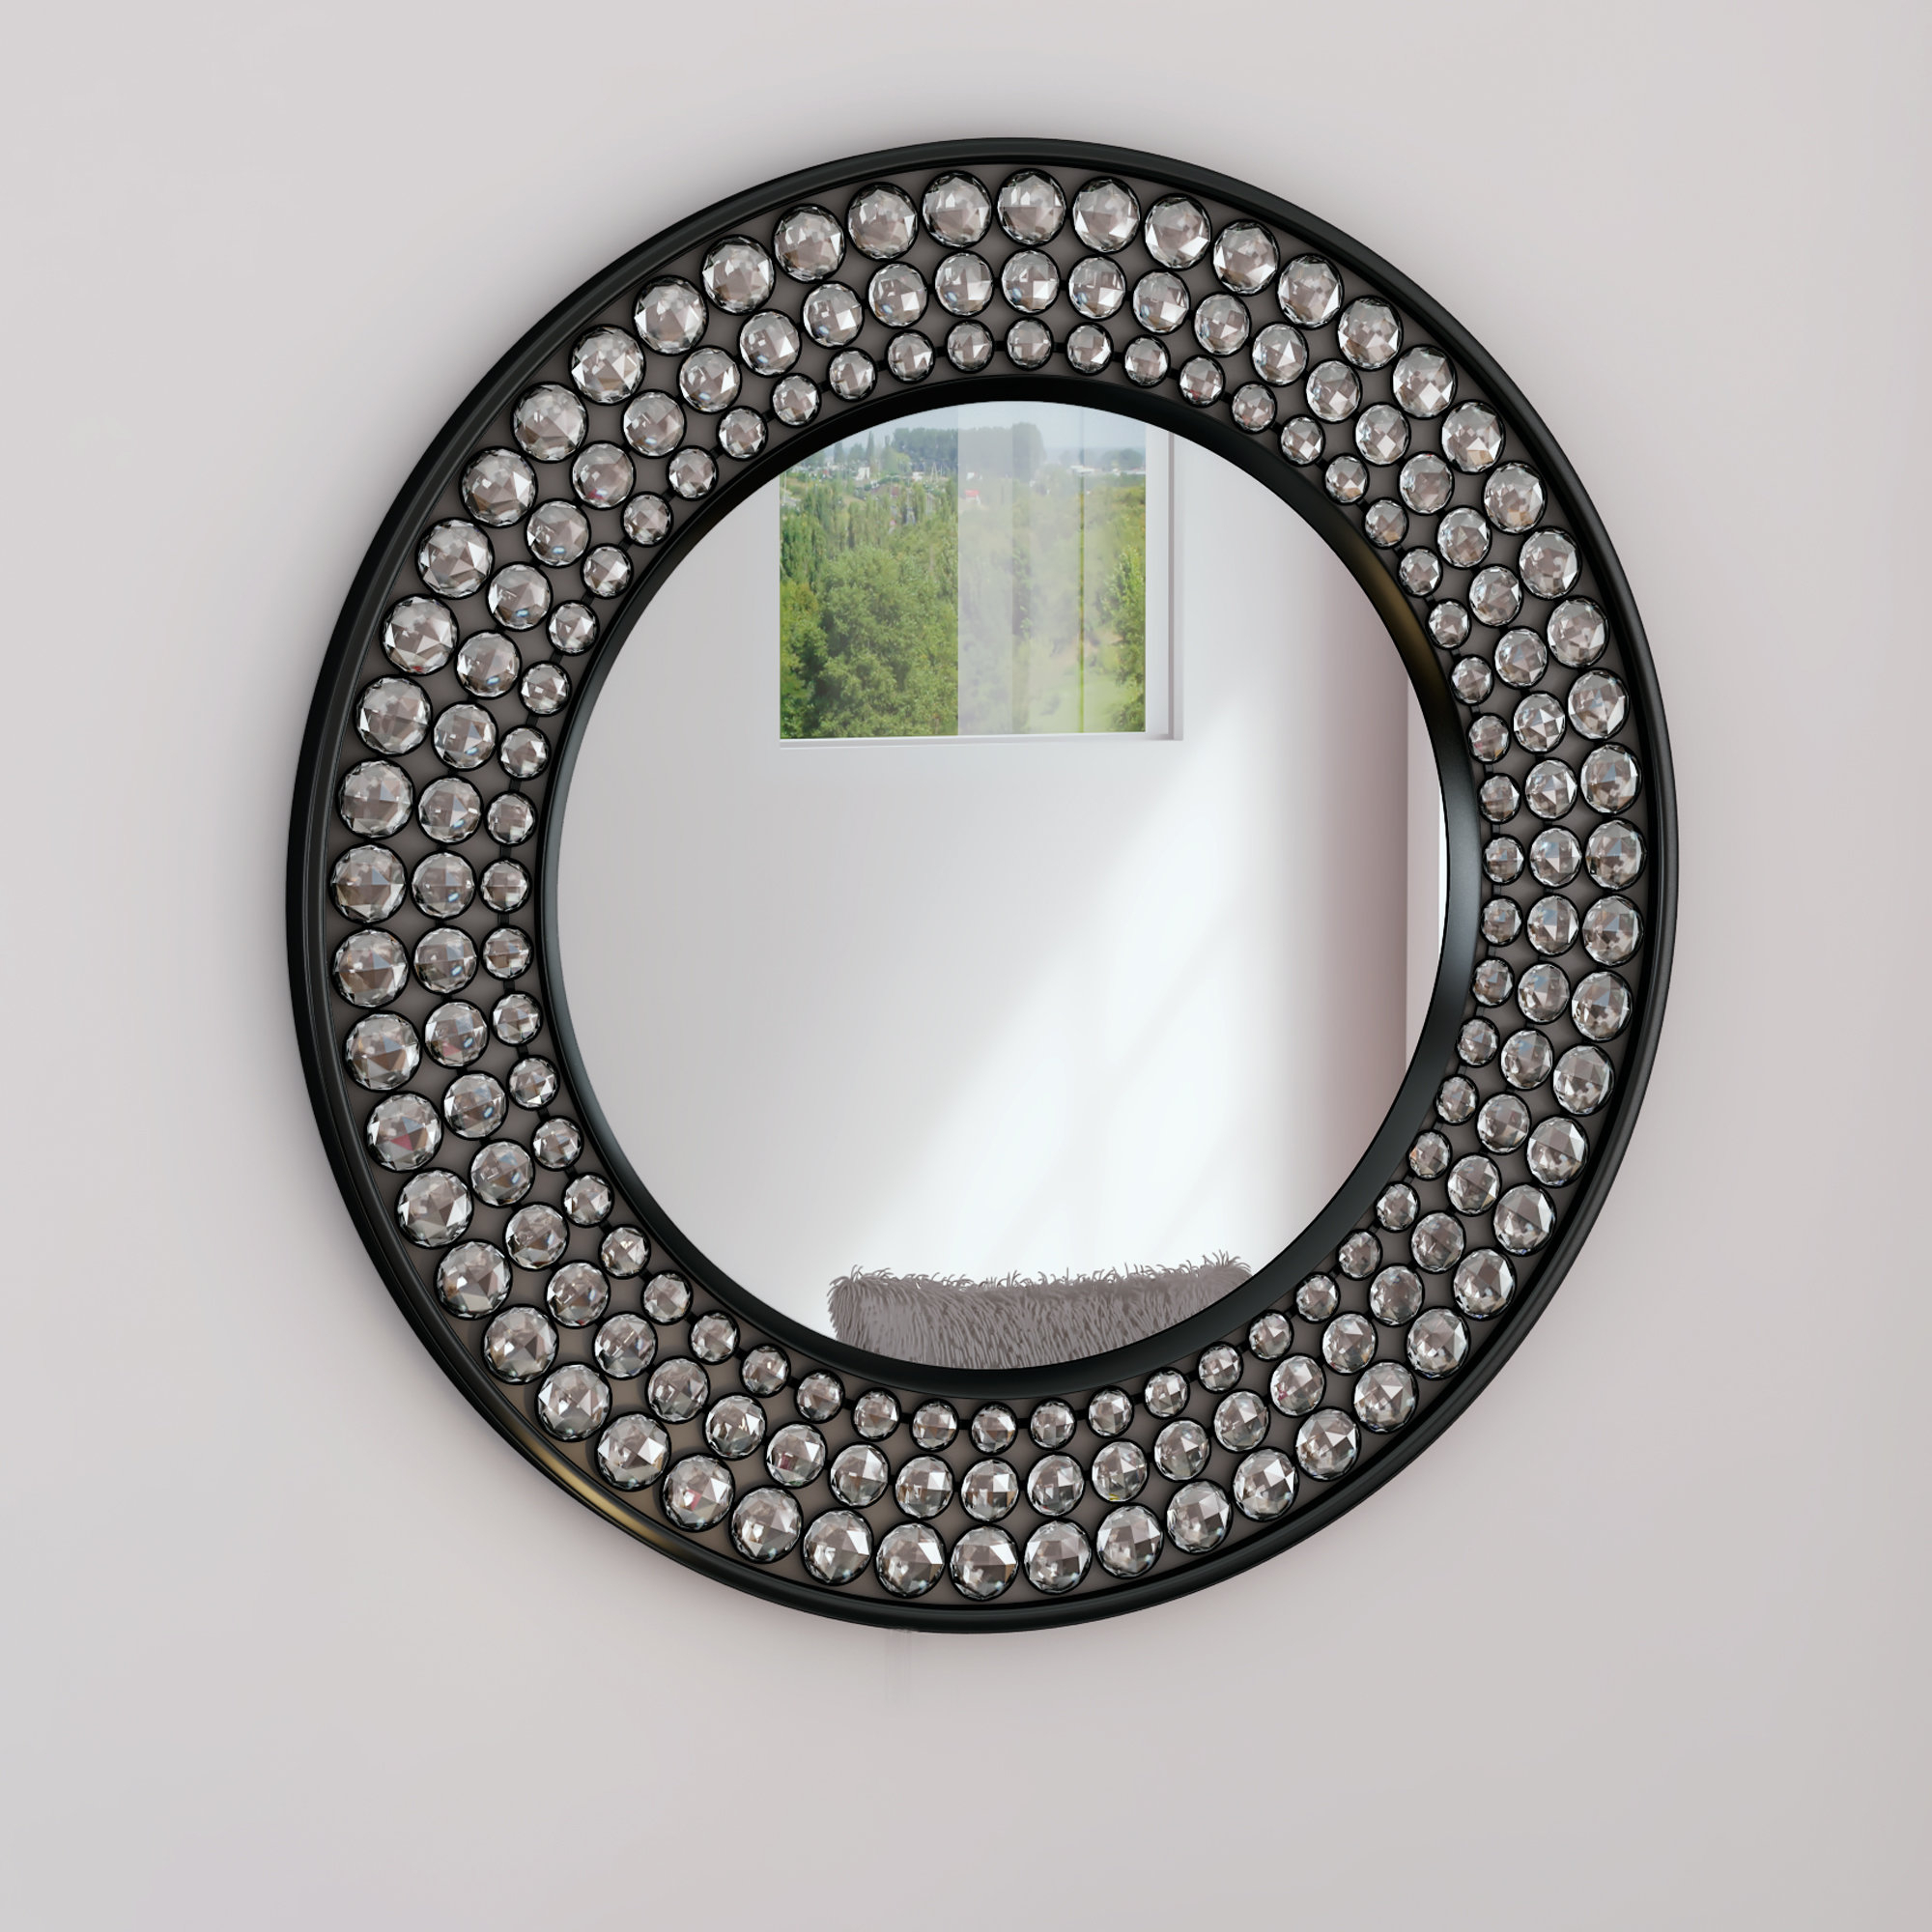 Valerian Jeweled Round Wall Mirror In Karn Vertical Round Resin Wall Mirrors (Image 15 of 20)